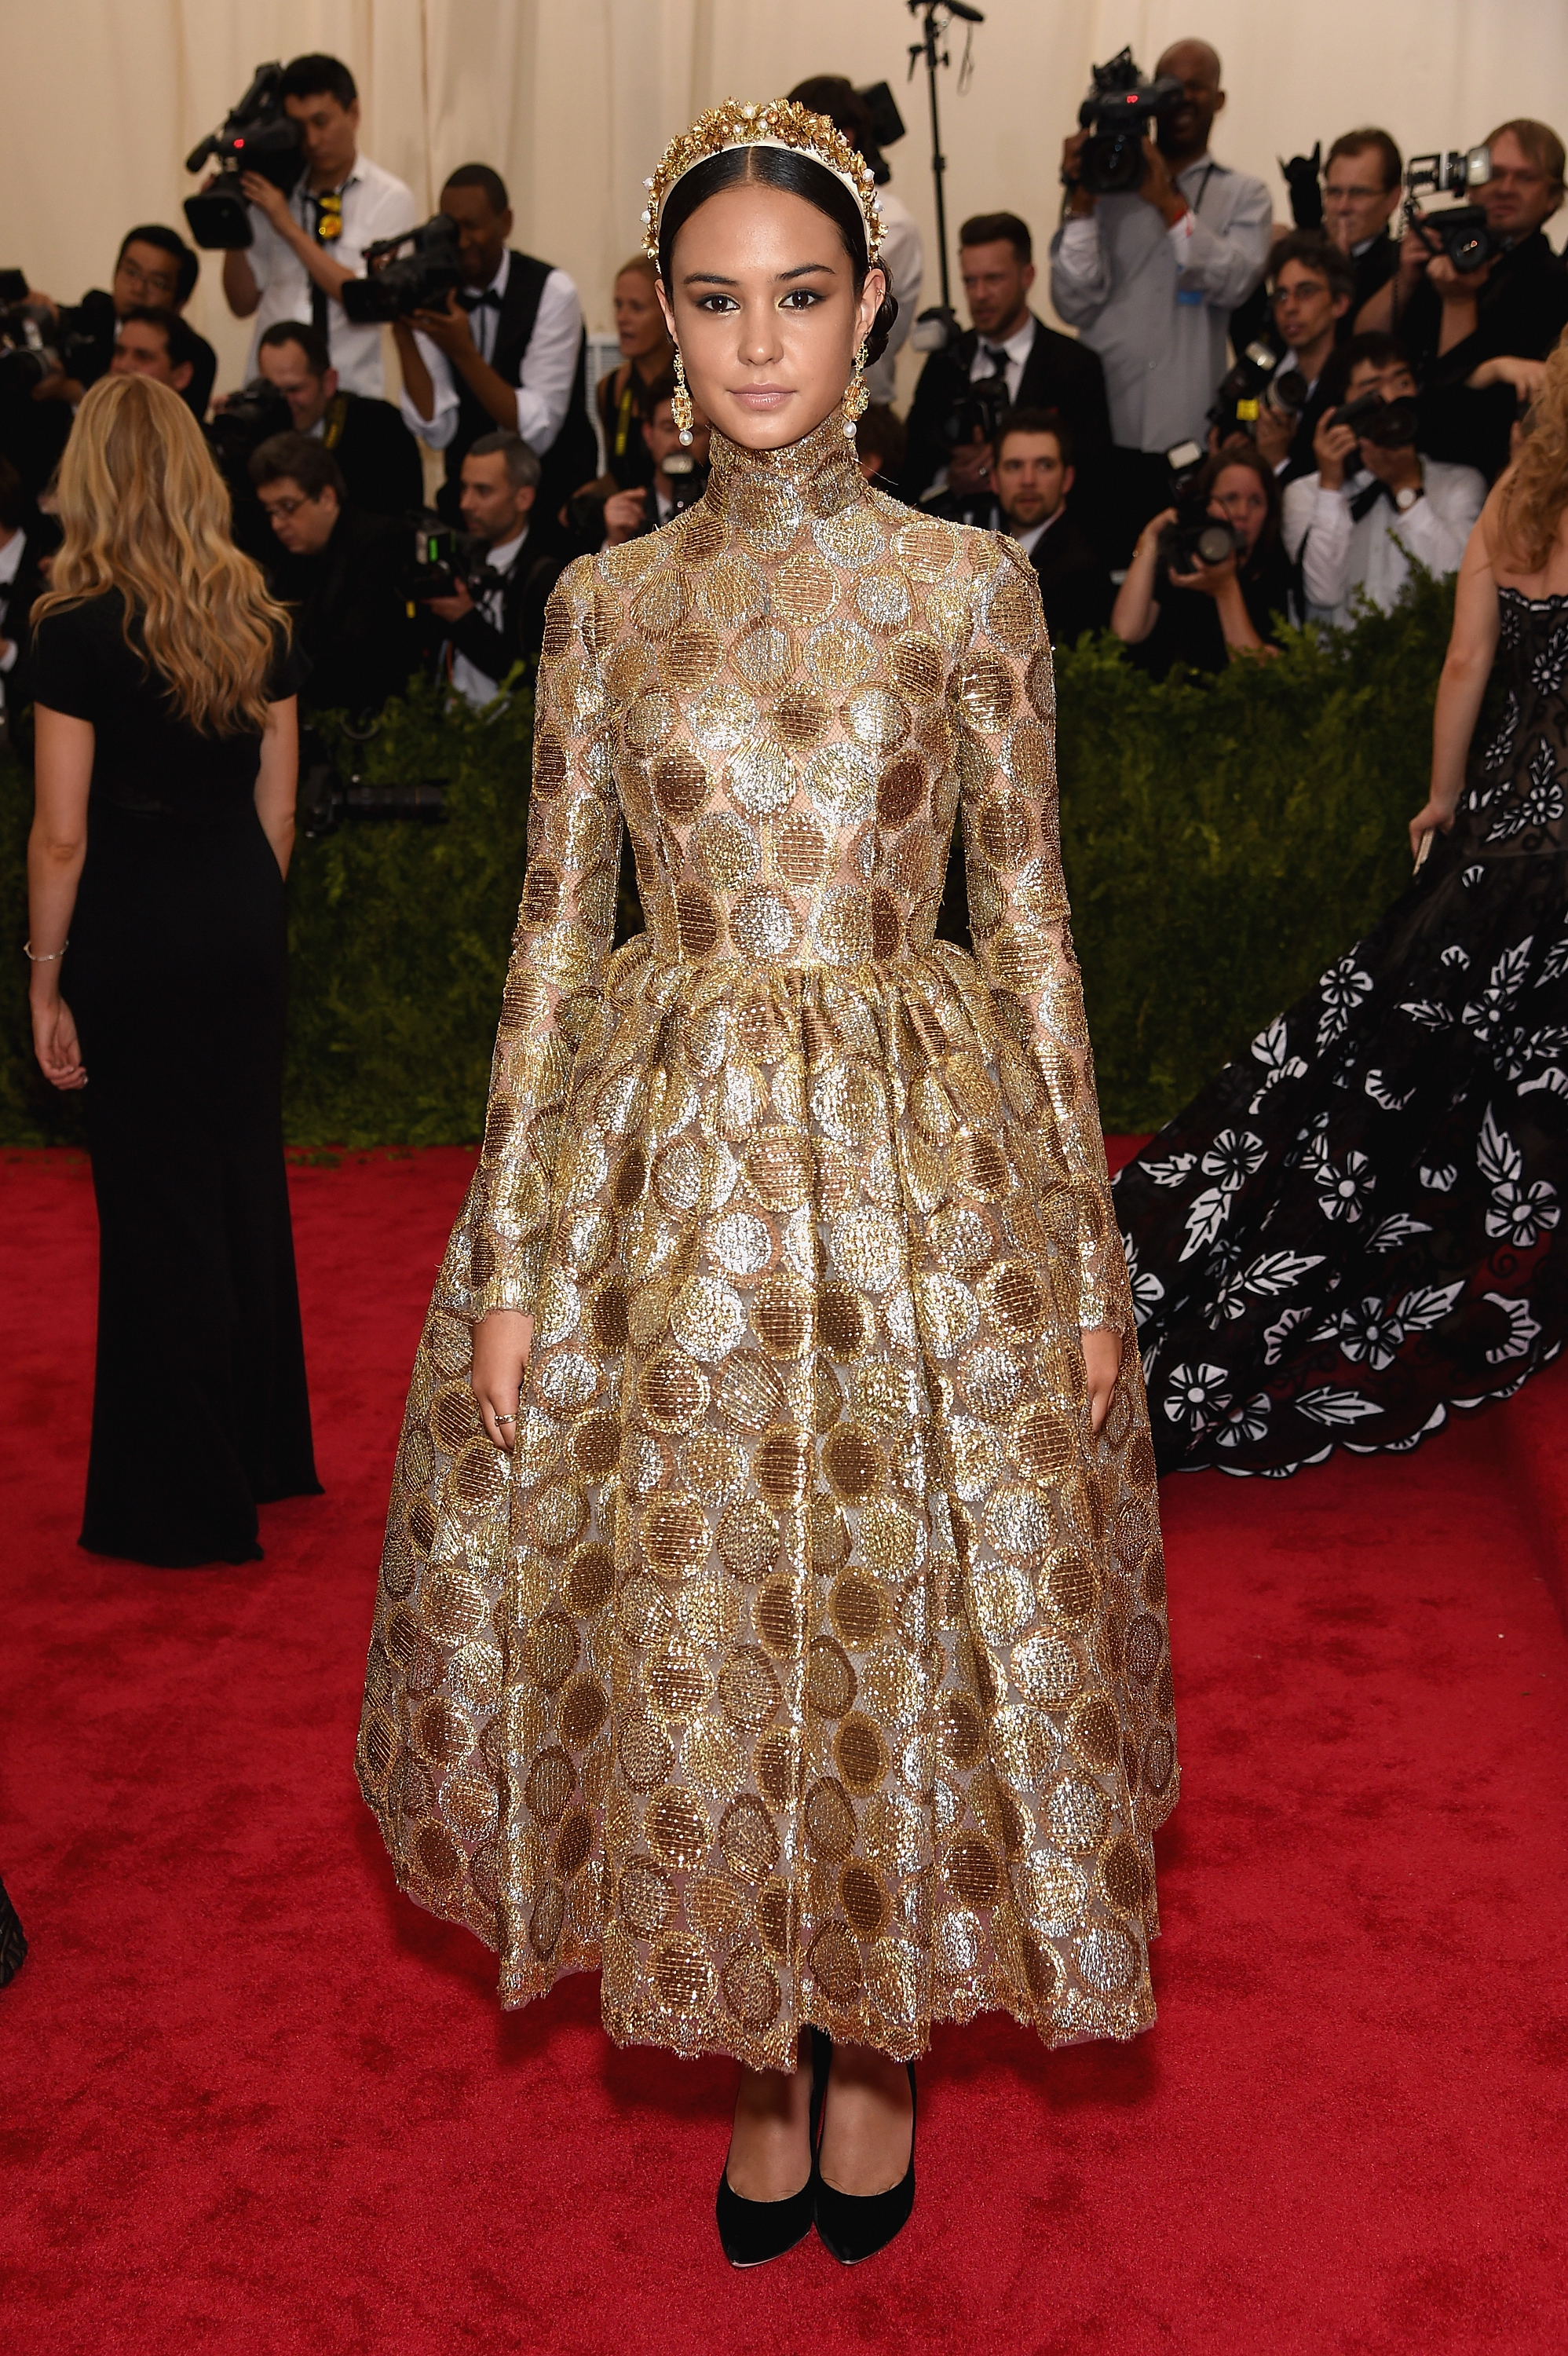 <p>Since nabbing a debut role in 'Mad Max: Fury Road', 19-year-old Courtney Eaton has been on a red carpet roll with luxury houses like Chanel, Dolce & Gabbana and Louis Vutton falling over themselves to dress her.As a former model with an eye for style, it's little wonder the Bunbury native has become a fashion darling. Check out her best looks here.</p>